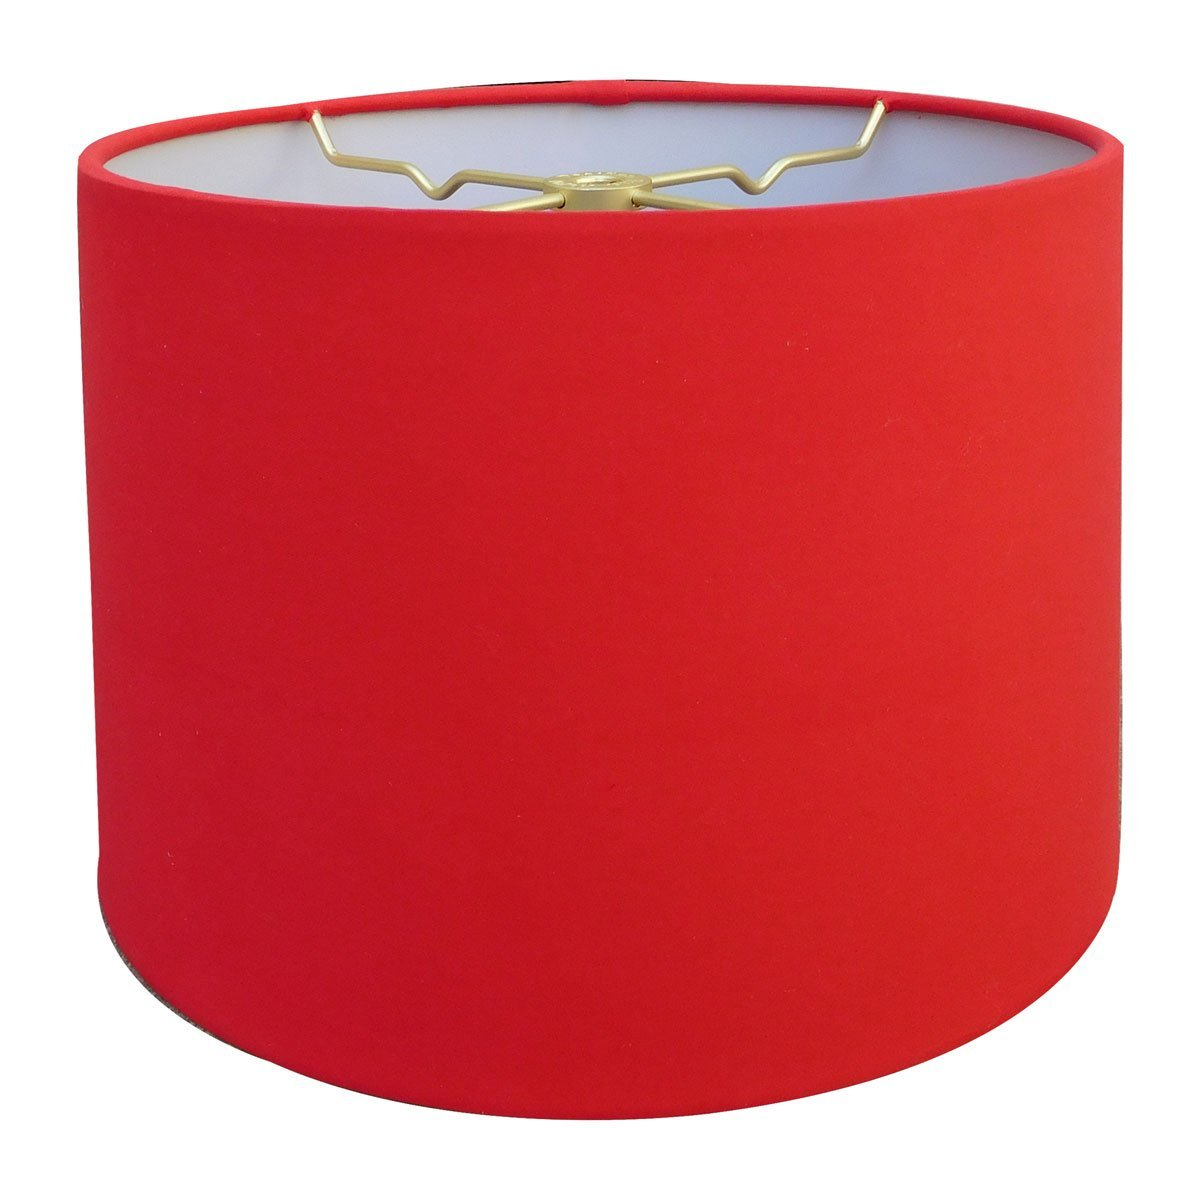 Get Quotations Royal Designs Red Shallow Drum Hardback Lamp Shade 15 X 16 10